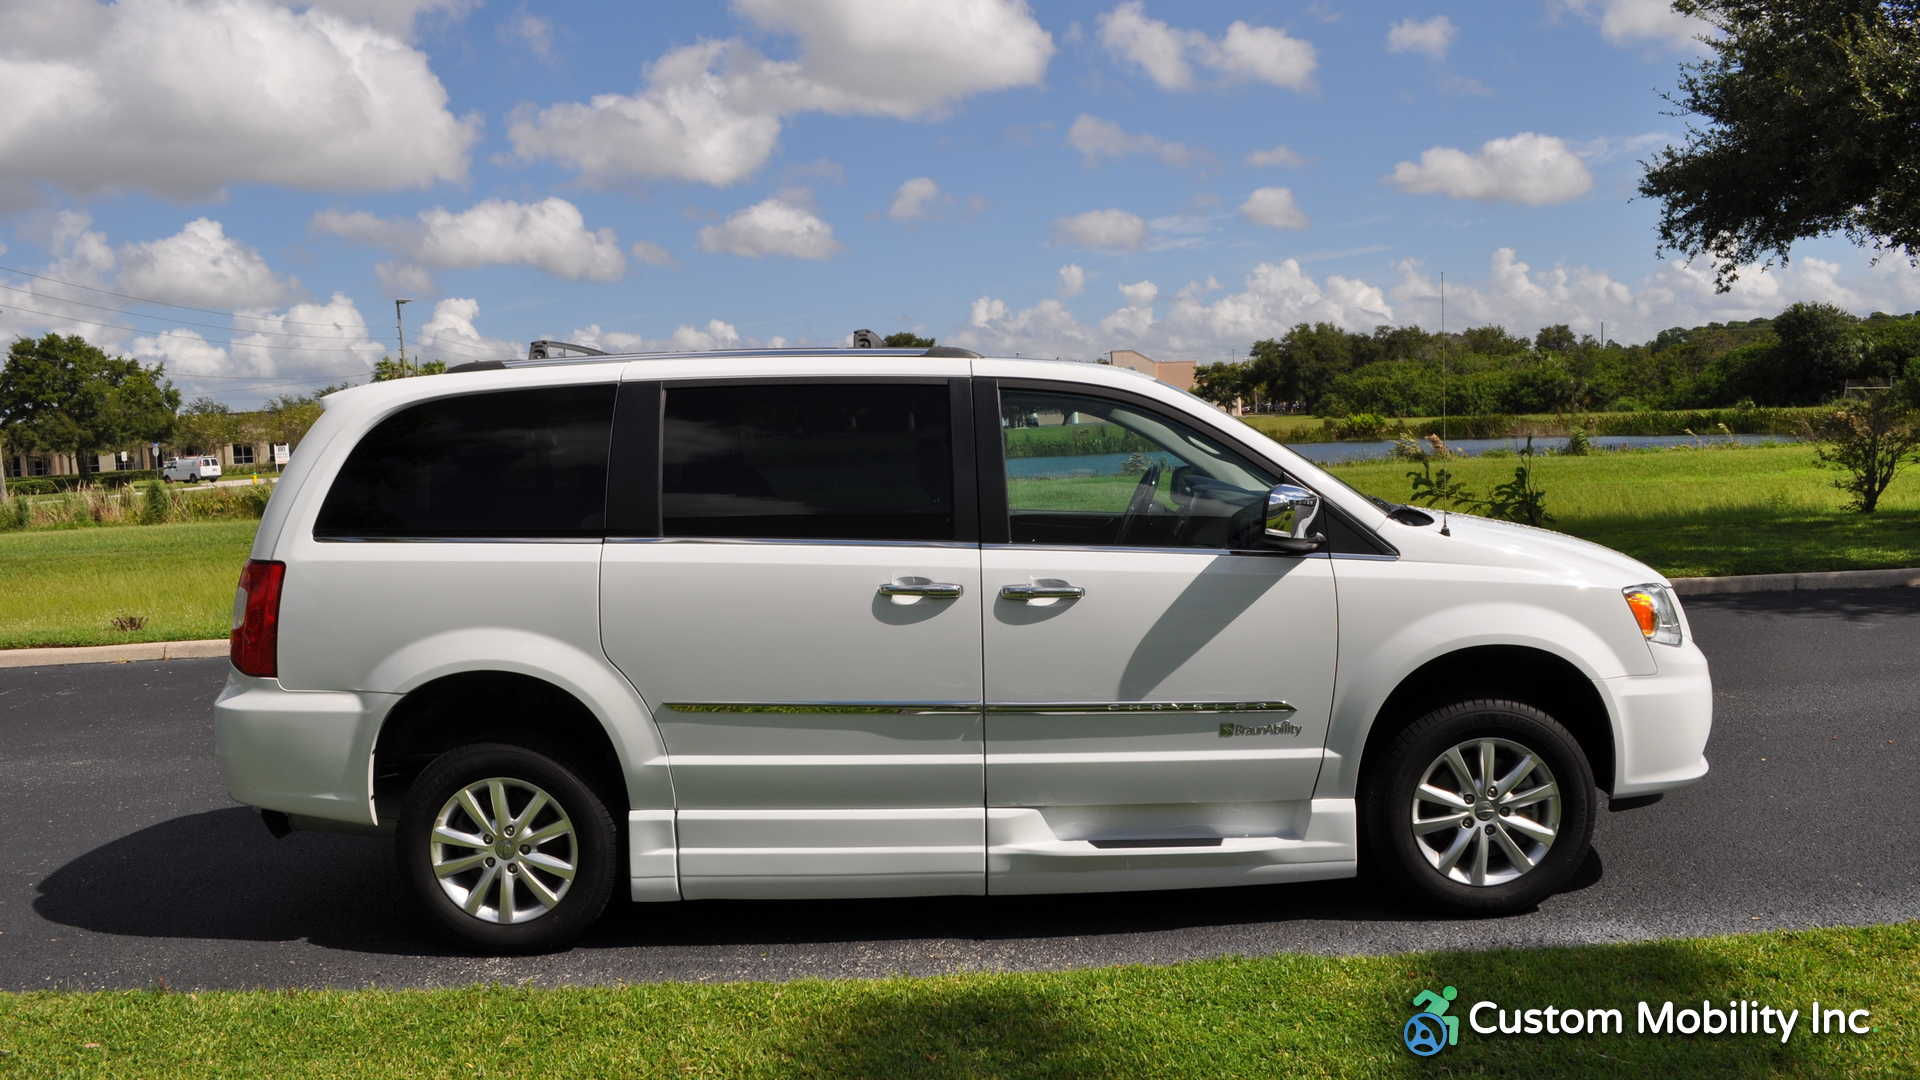 2016 chrysler town and country stock gr283284 wheelchair van for sale custom mobility of. Black Bedroom Furniture Sets. Home Design Ideas